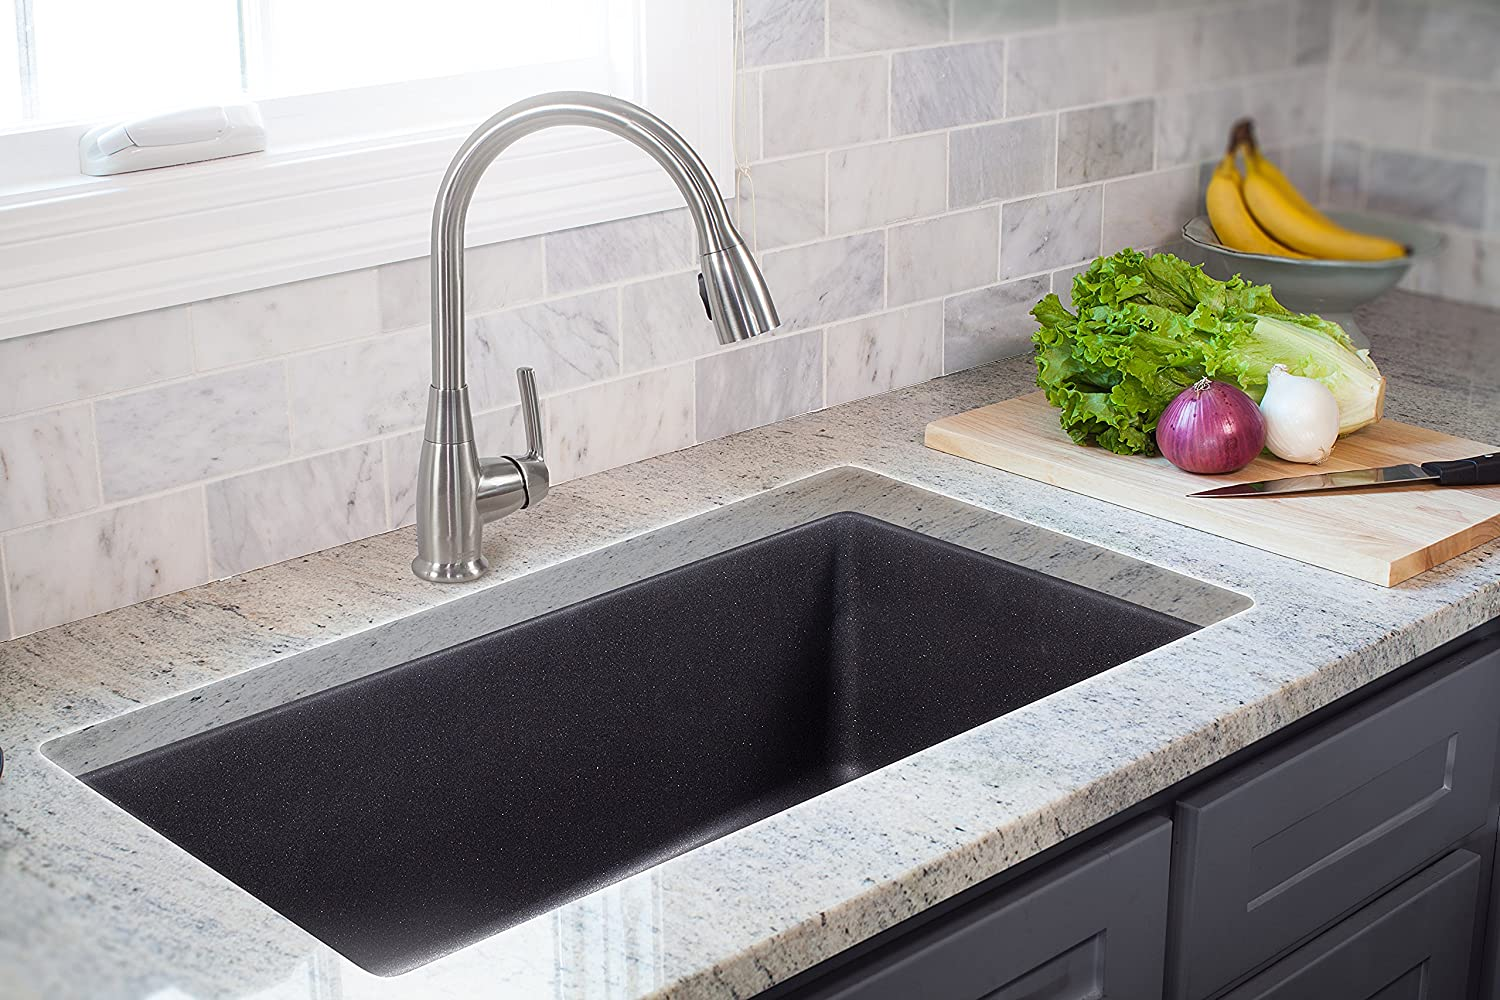 Charmant There Arenu0027t Many Sinks On The Market That Pay Special Attention To Making  The Sink More Hygienic For The Users, Especially In This Price Range.